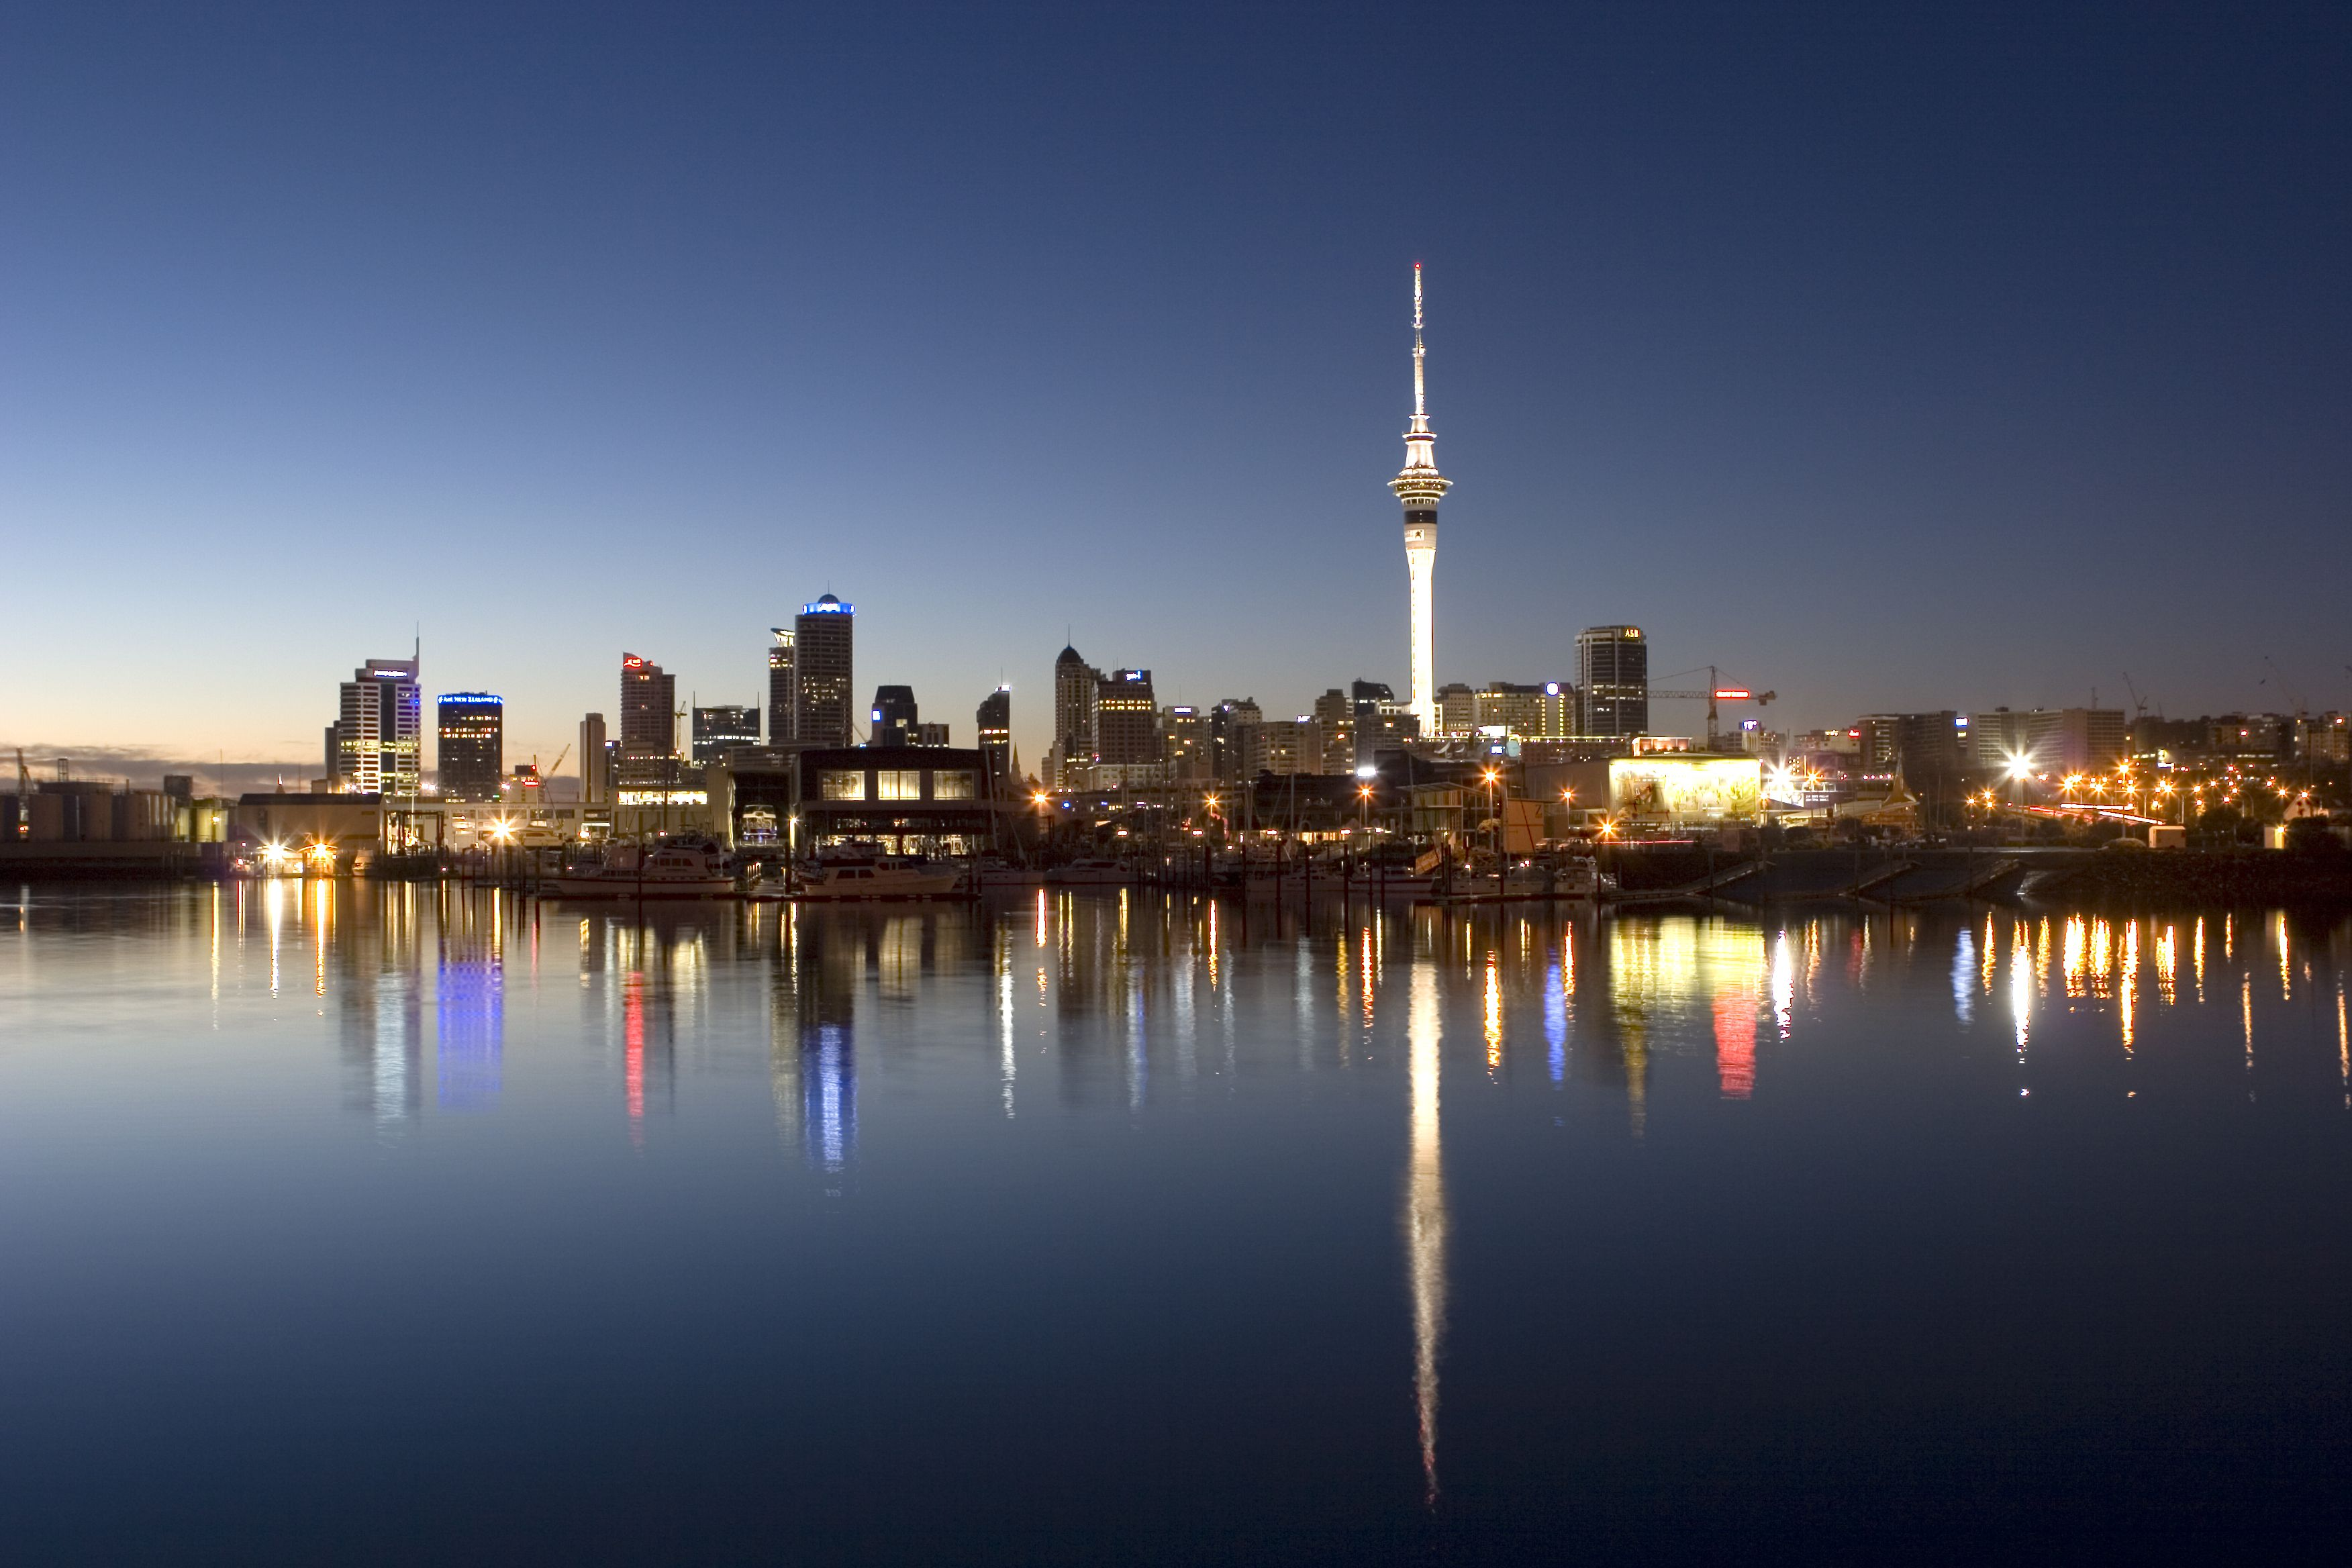 night view of a New Zealand city